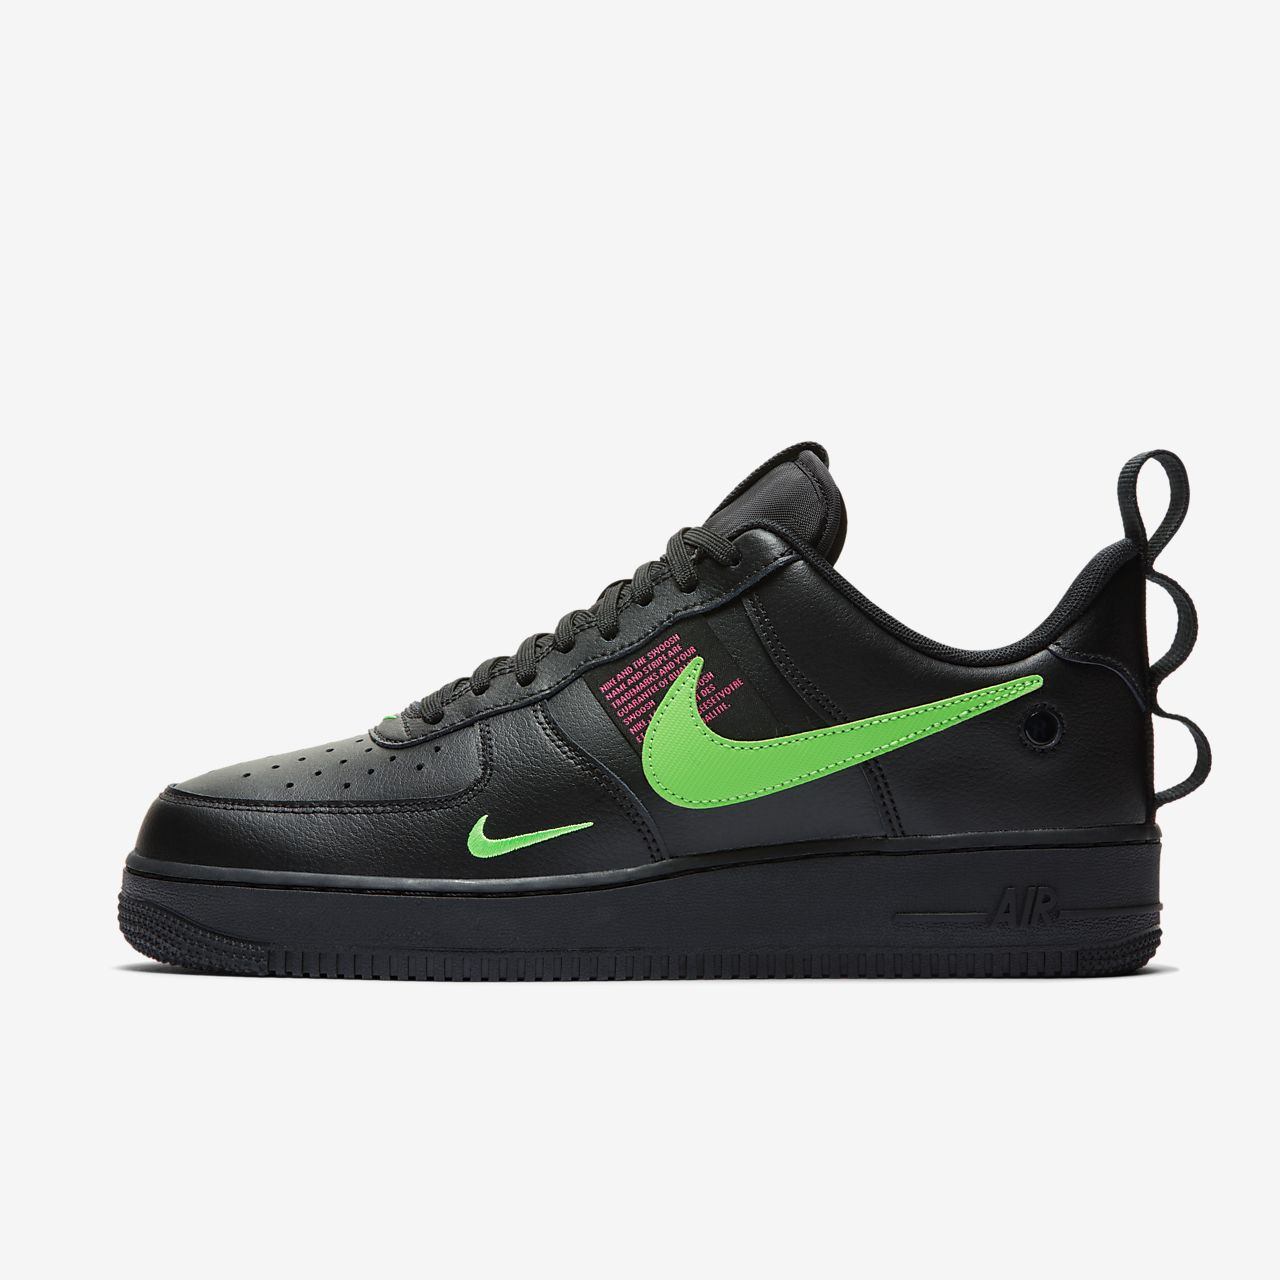 authentic quality affordable price cheap price Nike Air Force 1 LV8 UL Men's Shoe